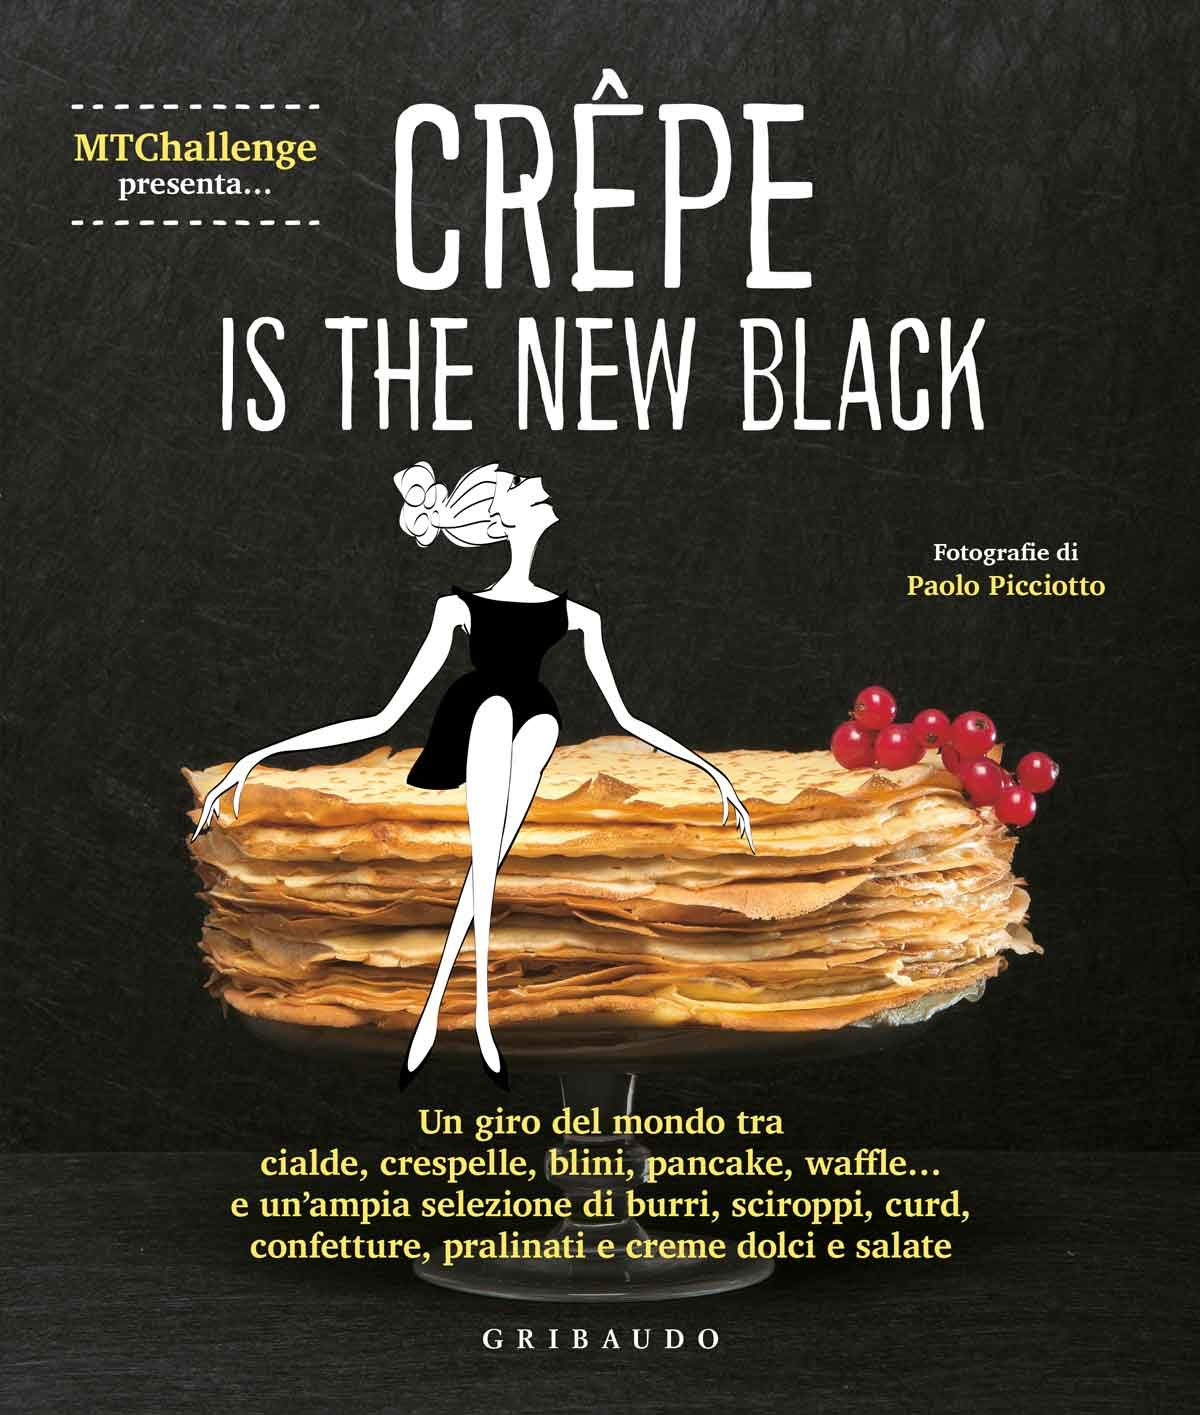 Crepe is the new black